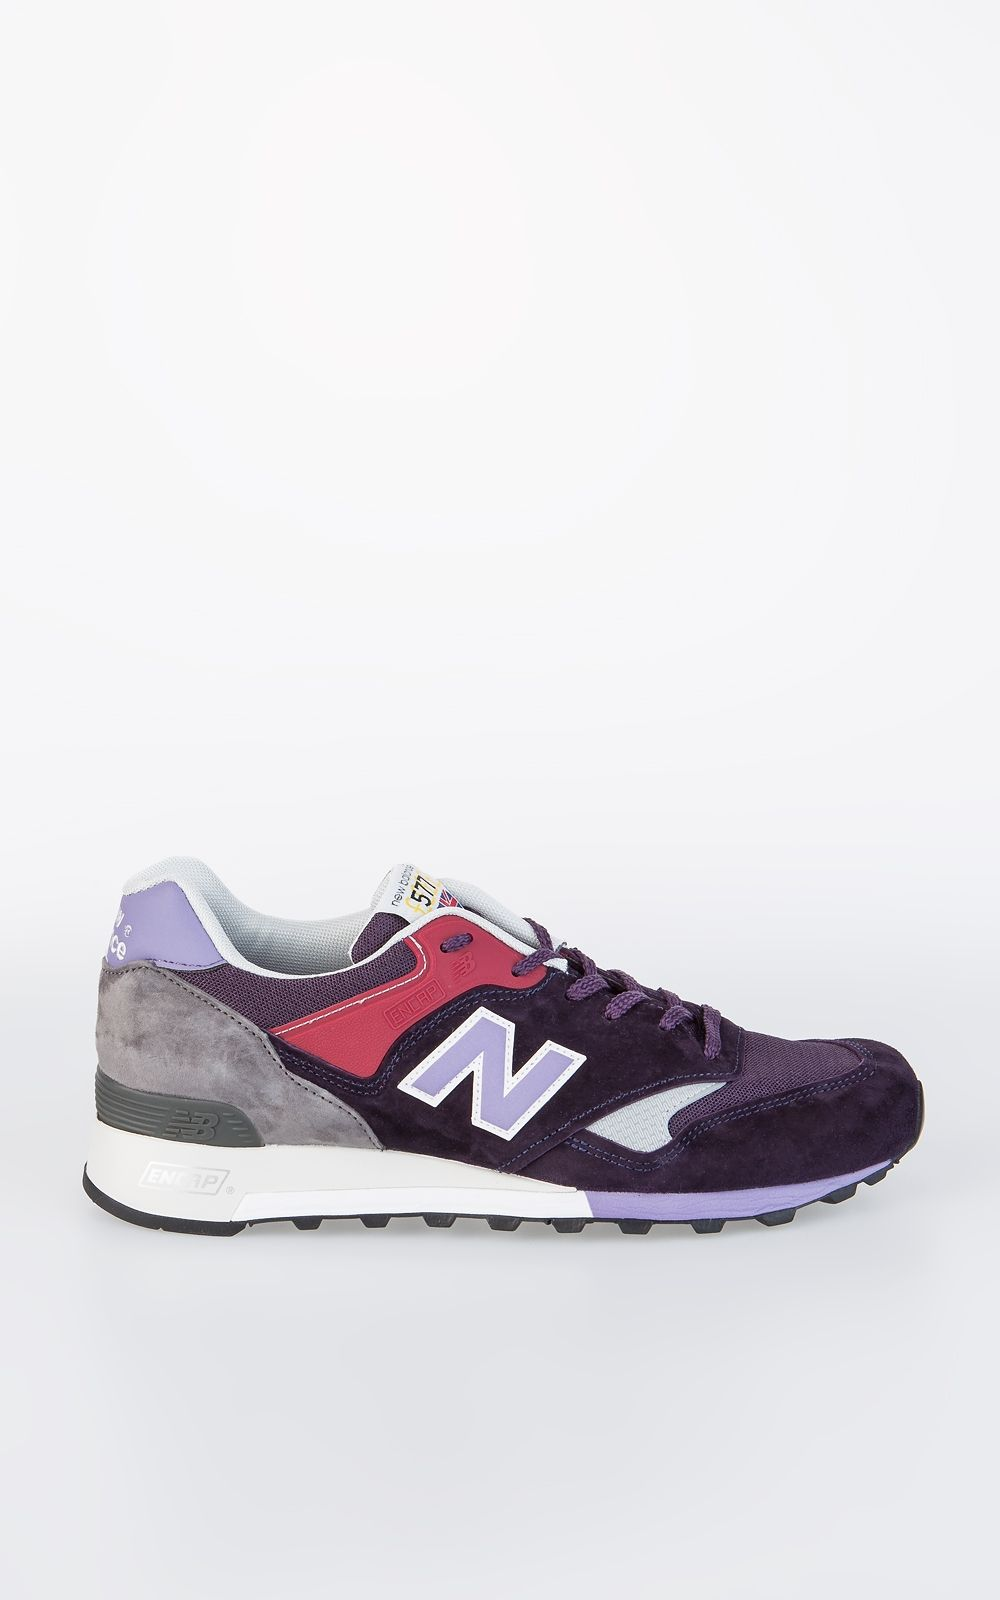 New Balance M577 ETP Purple/Pink